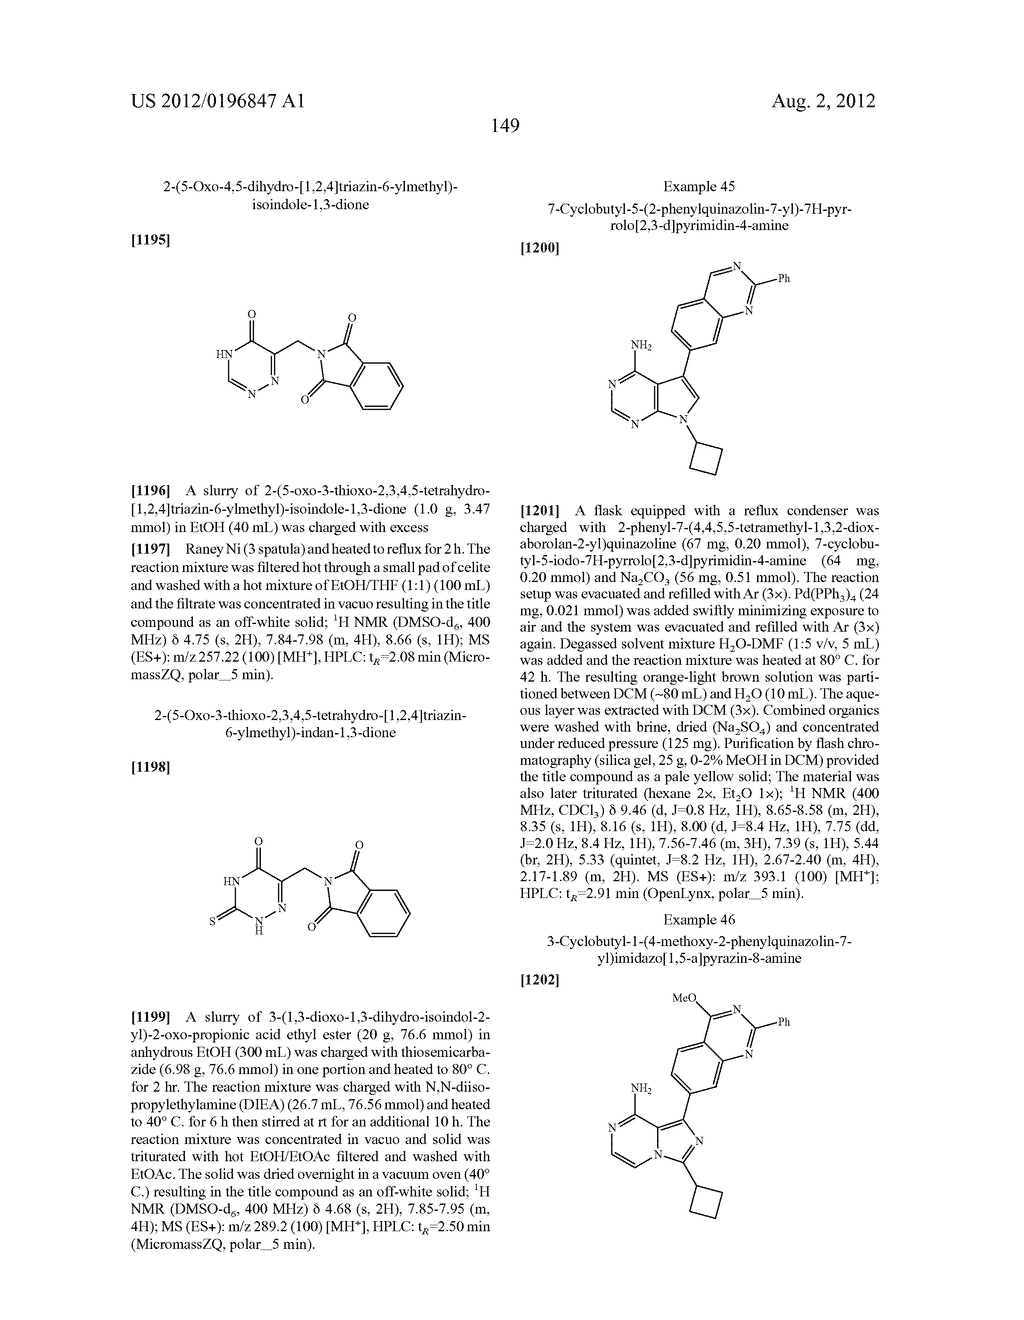 6,6-Bicyclic Ring Substituted Heterobicyclic Protein Kinase Inhibitors - diagram, schematic, and image 150